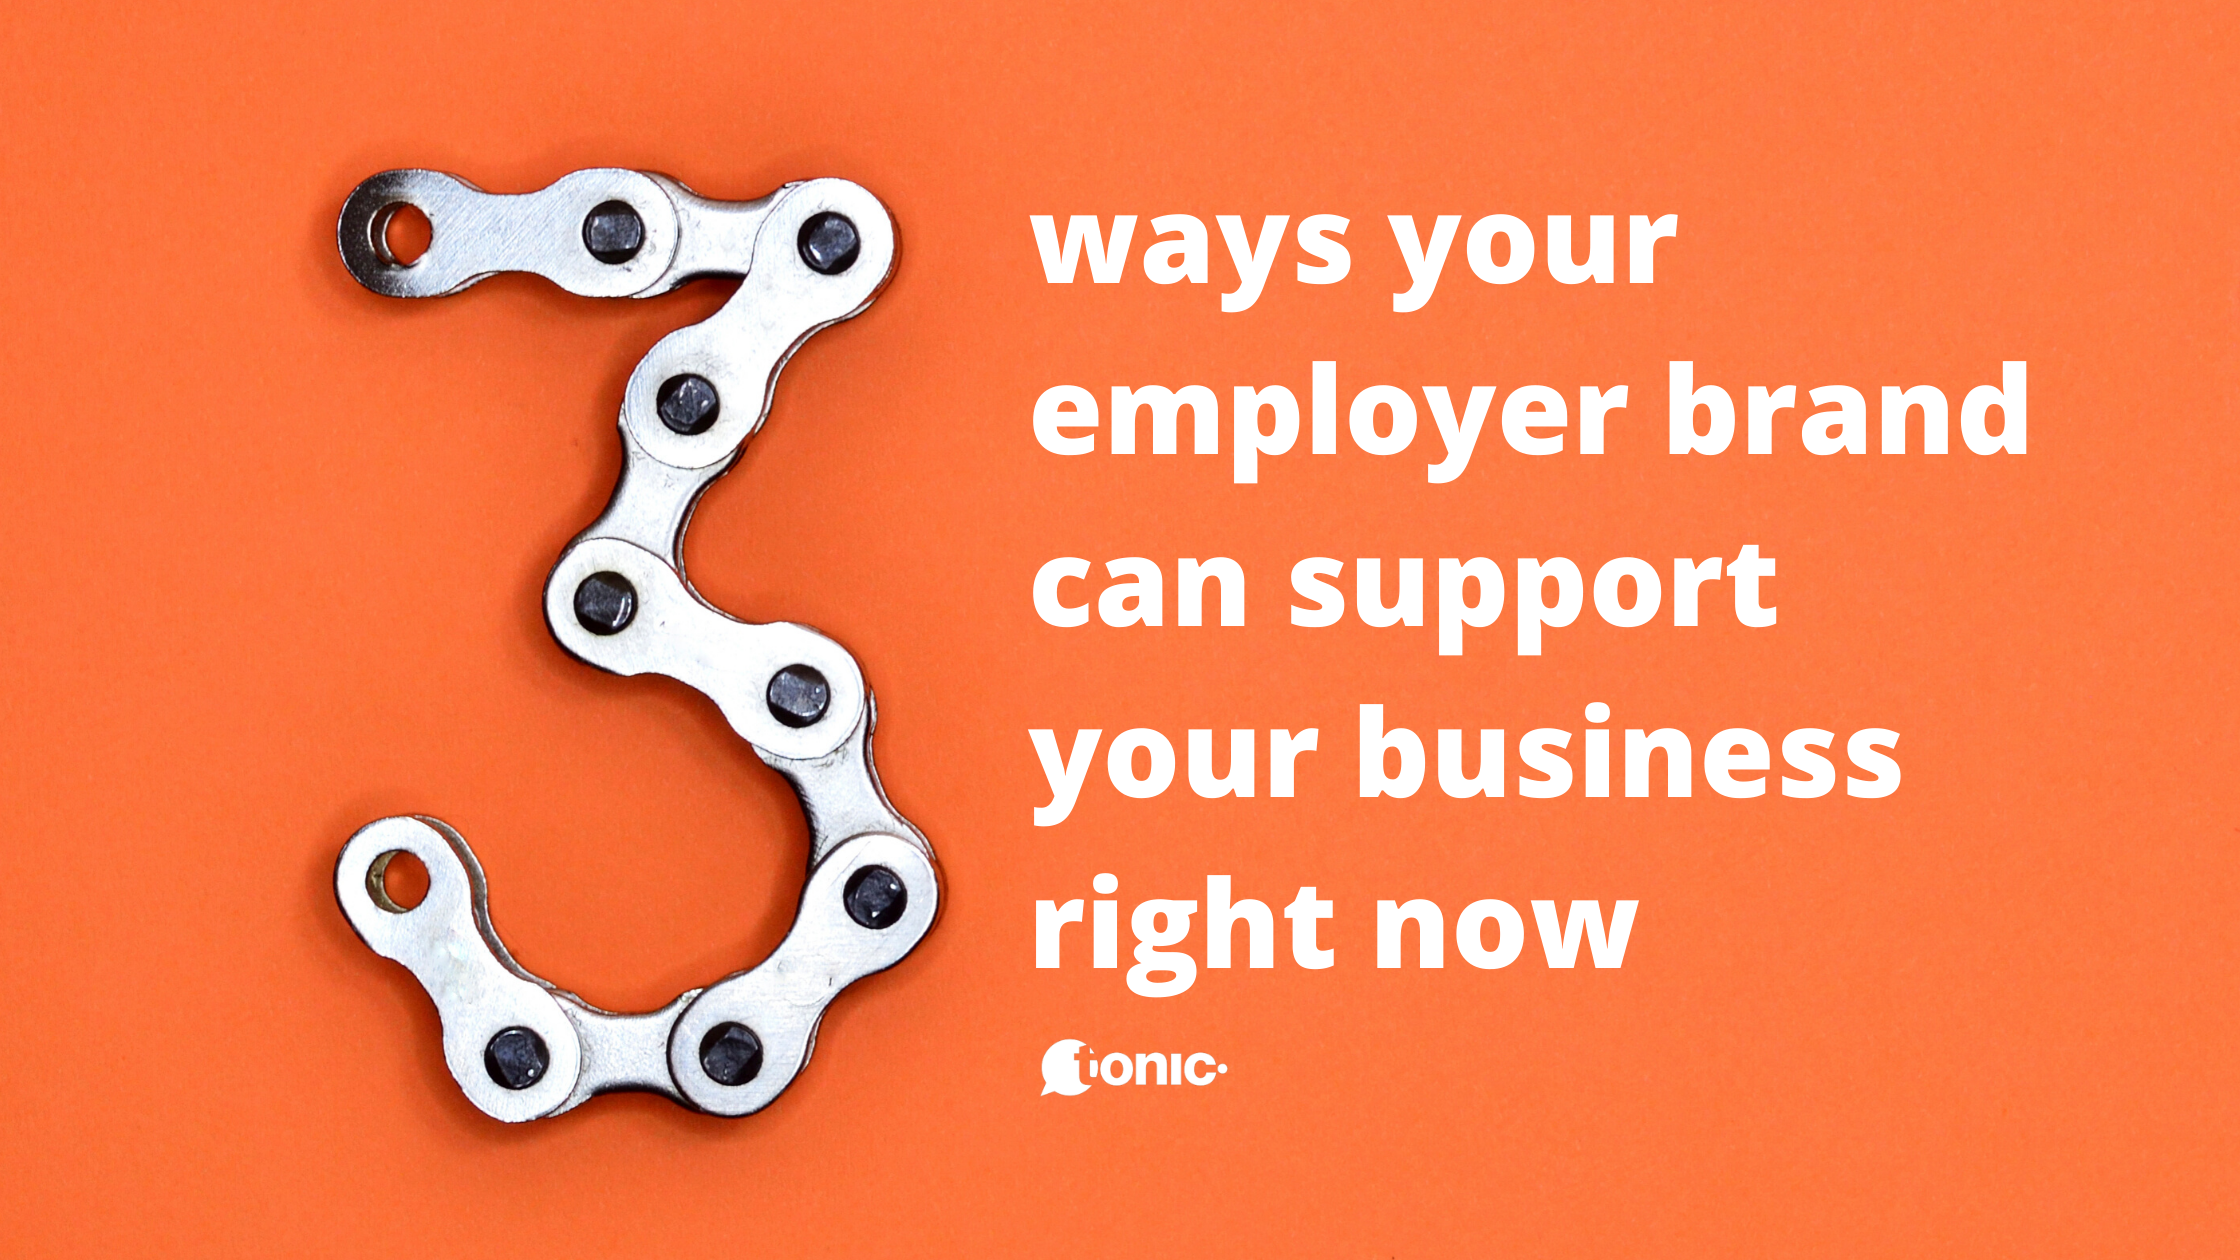 Three ways your employer brand can work for you right now